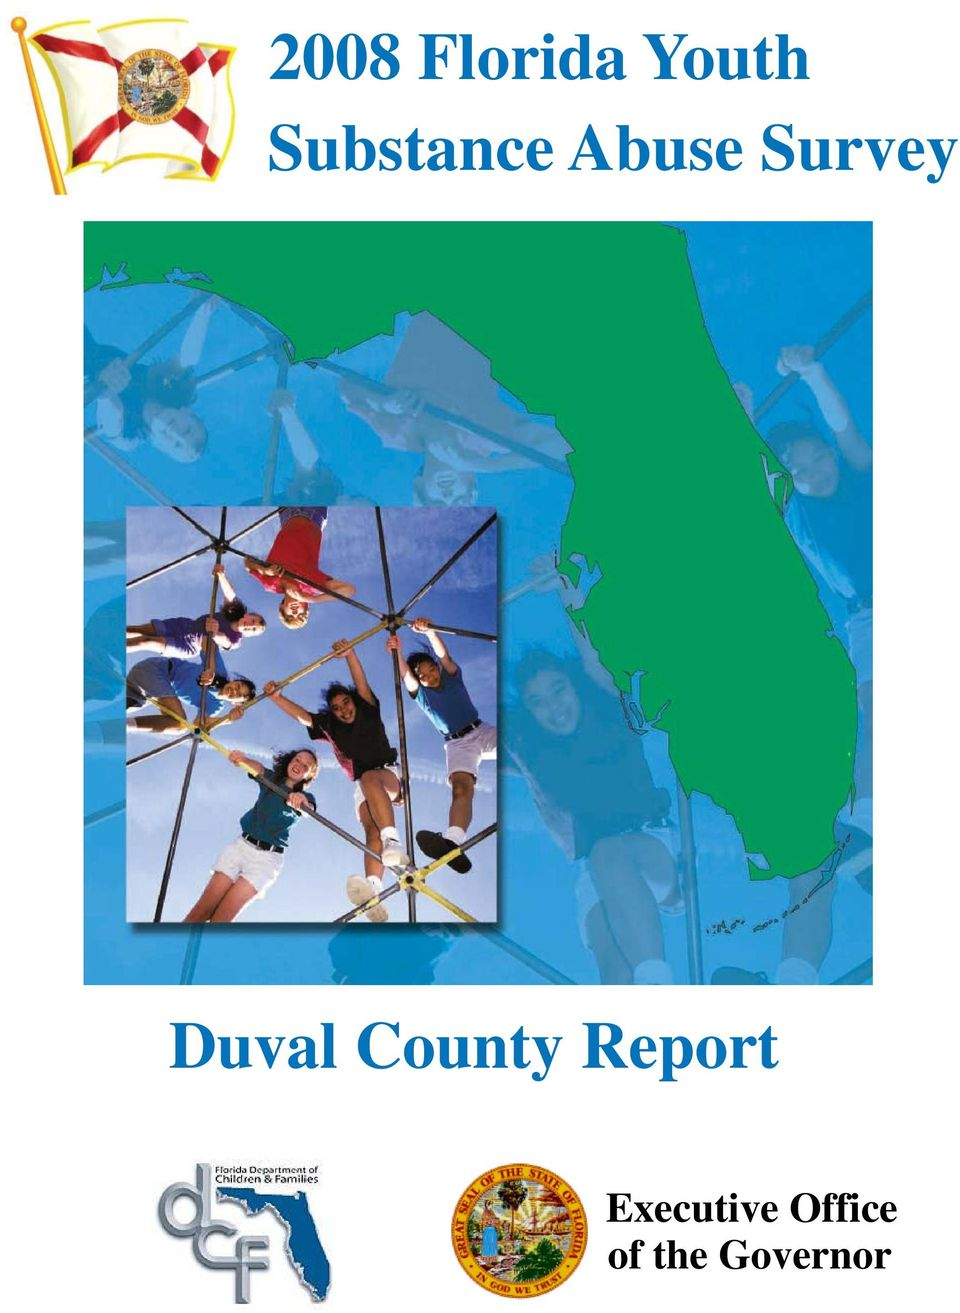 Duval County Report